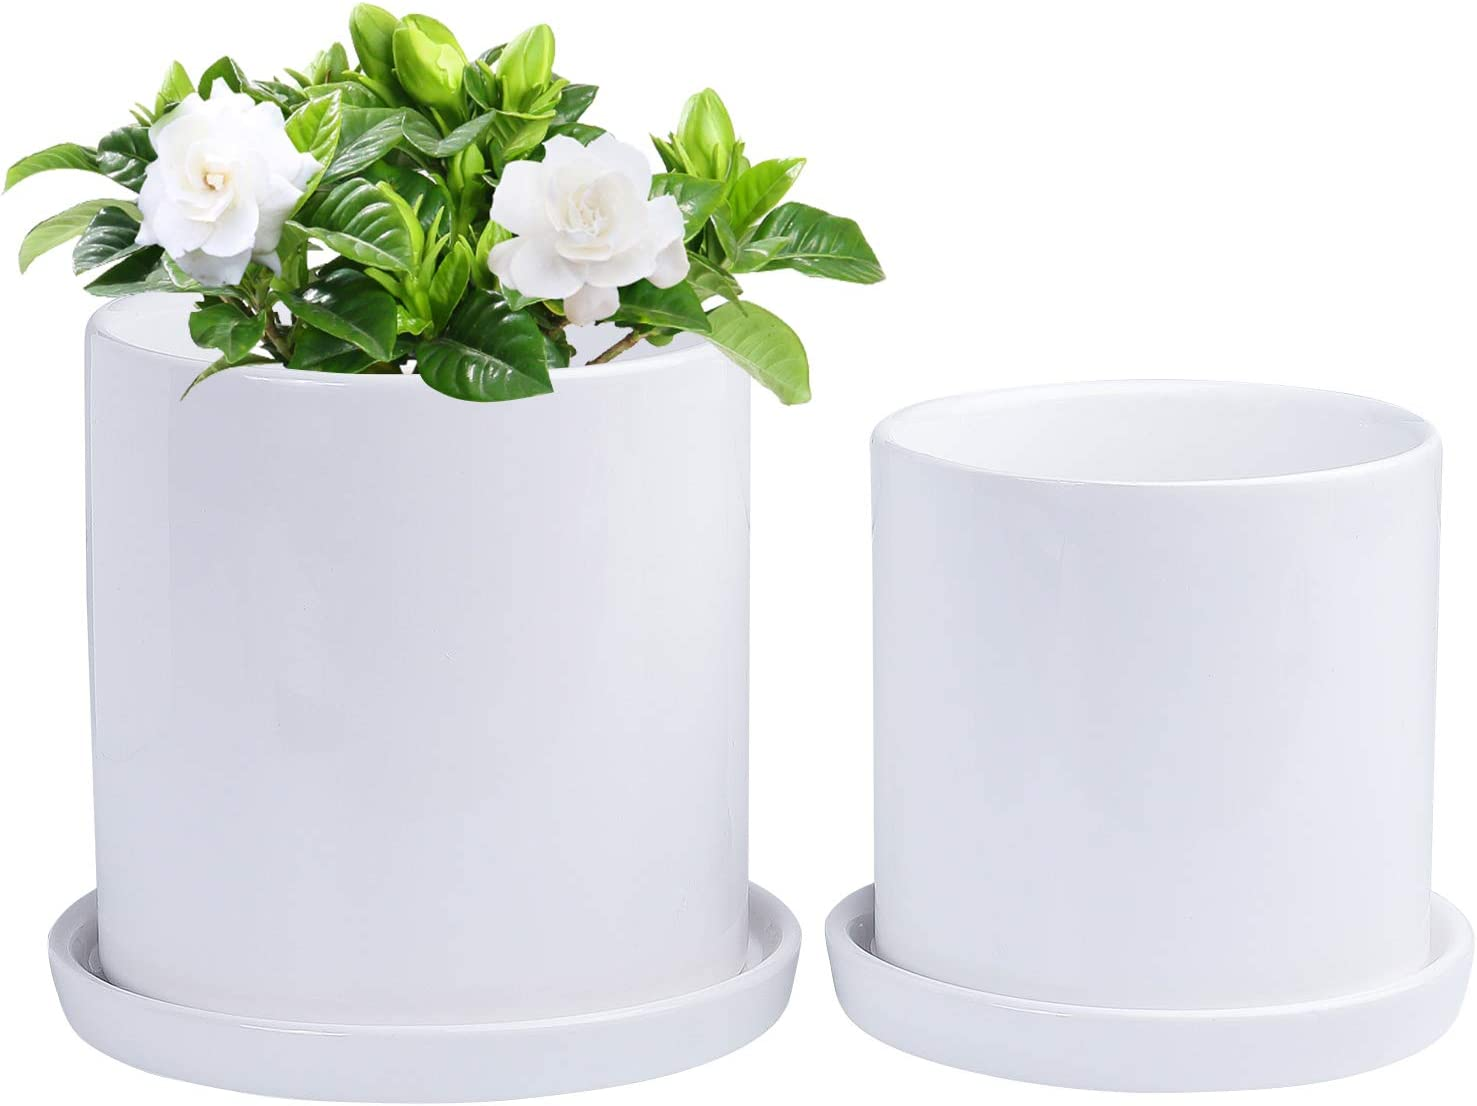 Amazon Com Yingerhuan Plant Pots 5 1 4 3 Inch Cylinder Ceramic Planters With Connected Saucer Modern Decorative Gardening Containers For Succulents Flowers Herbs Cactus House And Office Décor White Kitchen Dining